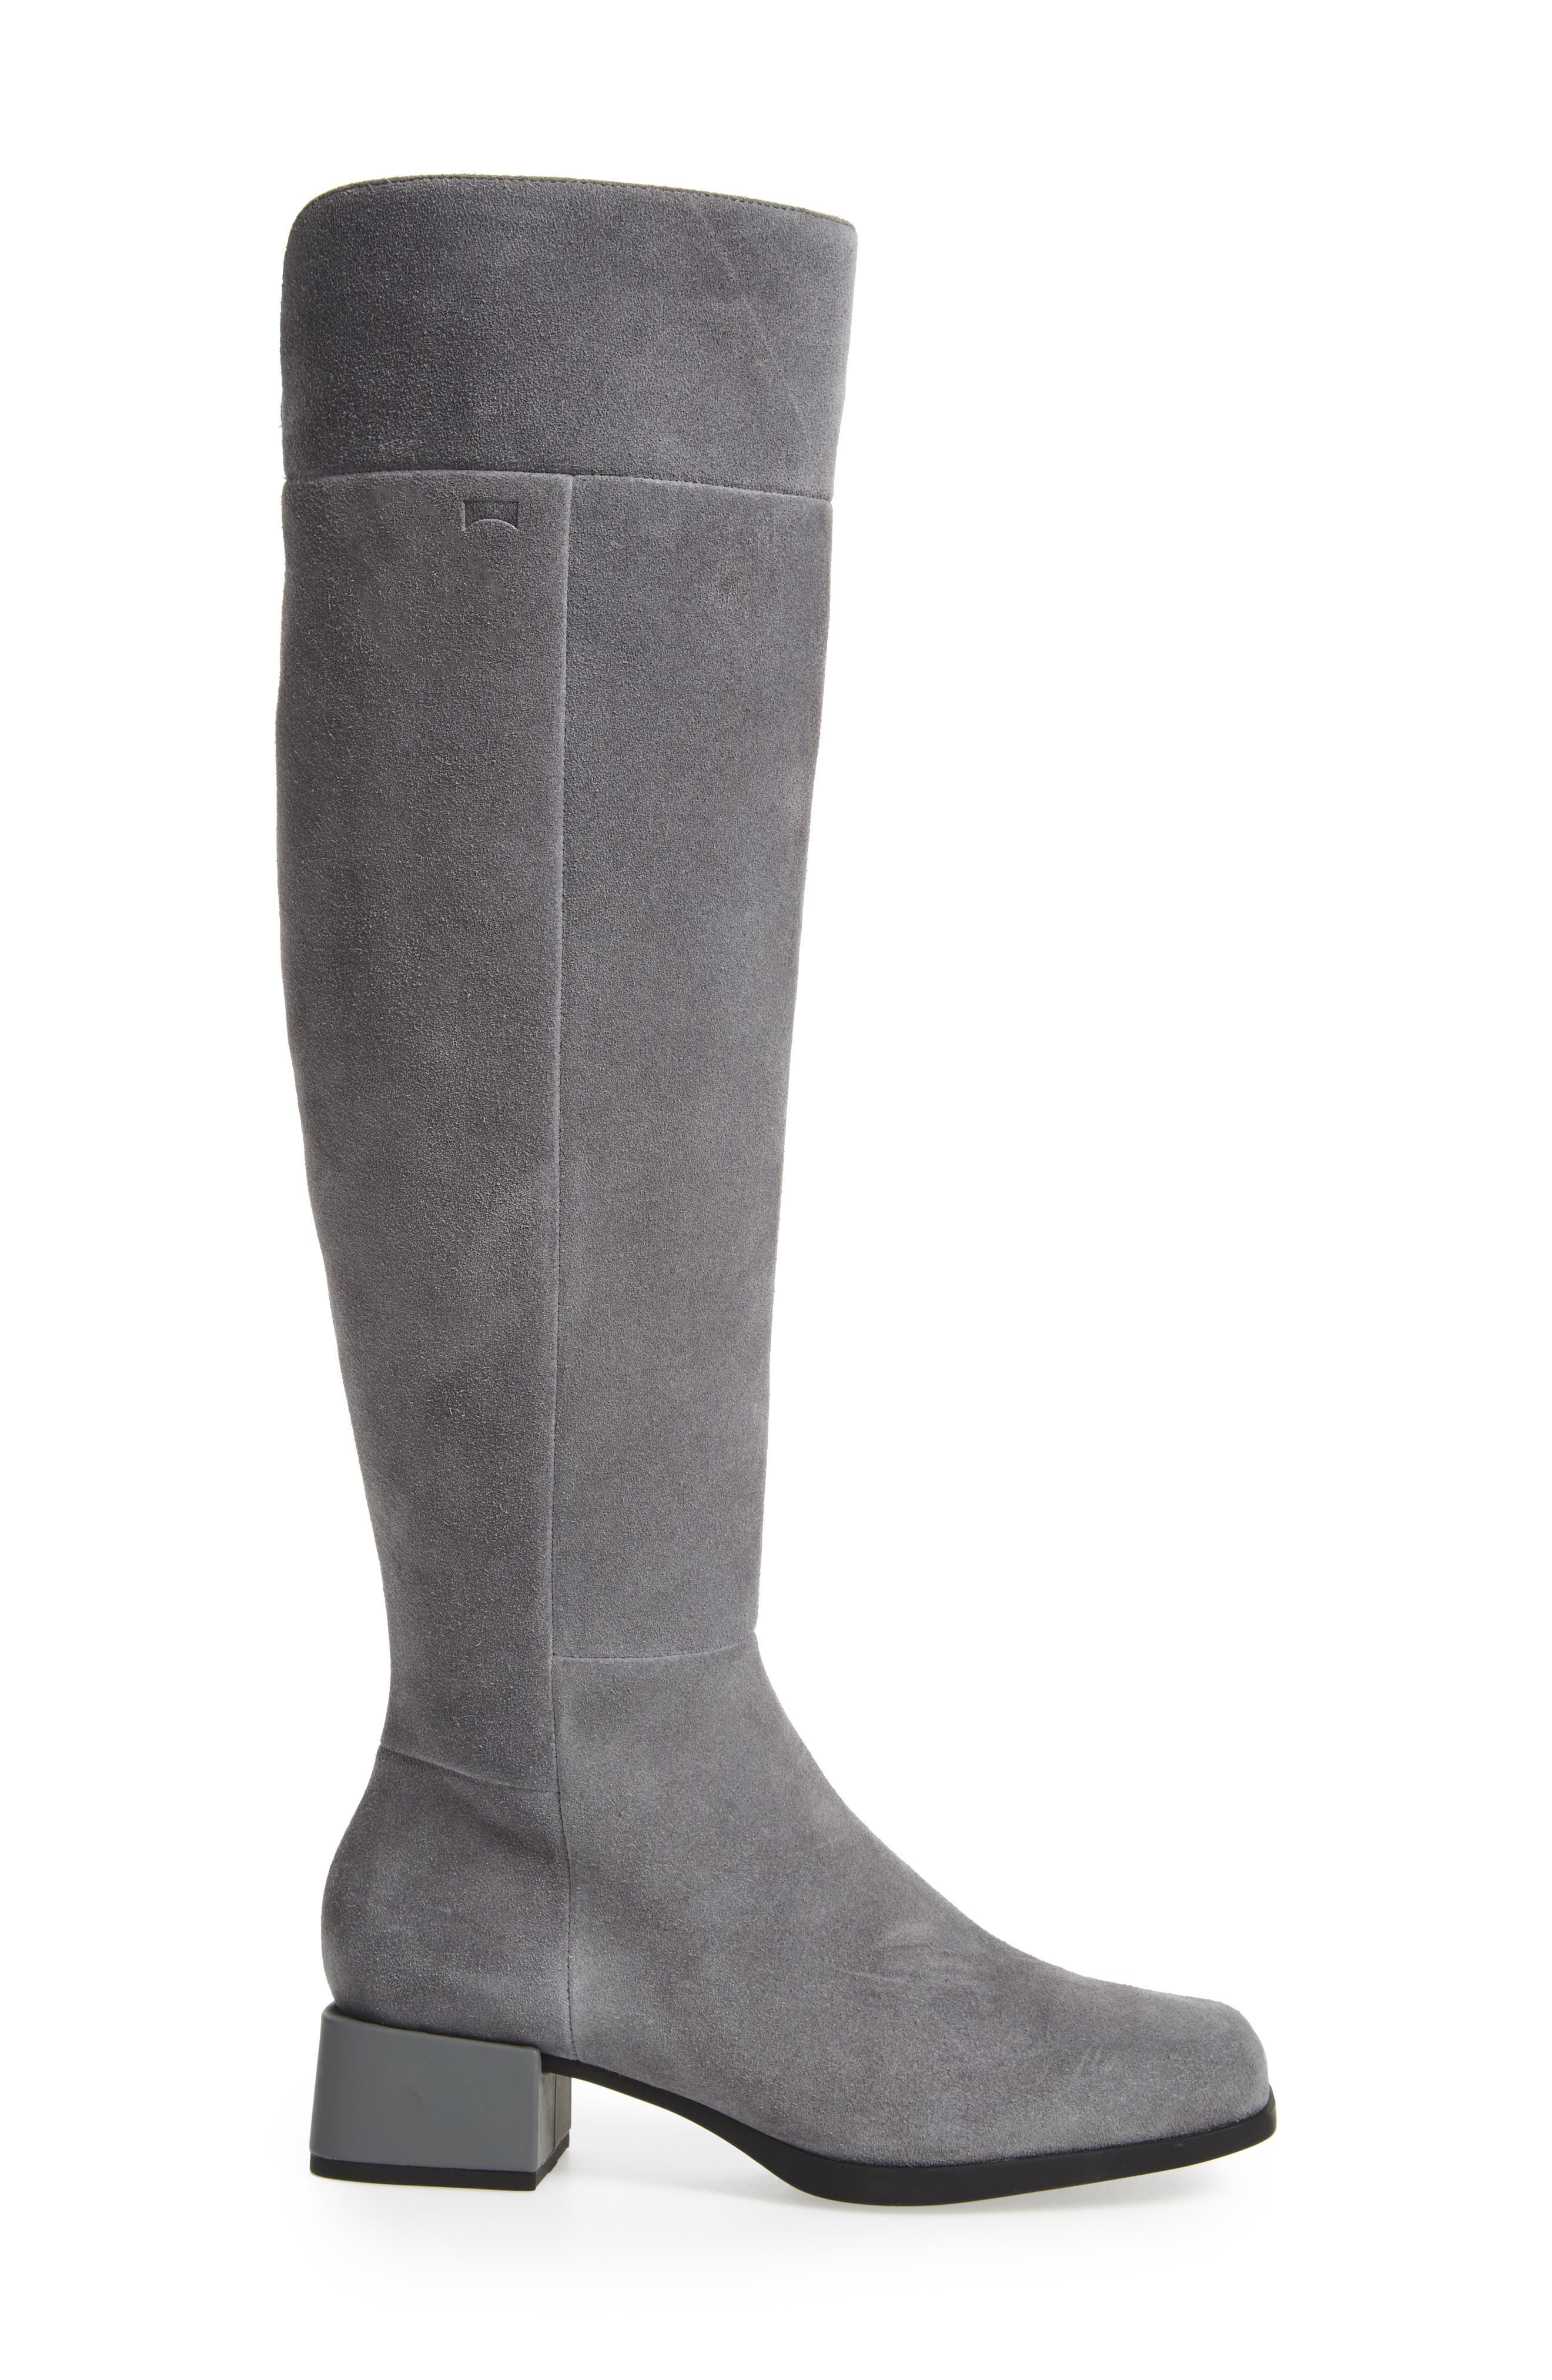 Kobo Knee High Boot,                             Alternate thumbnail 3, color,                             Grey Leather